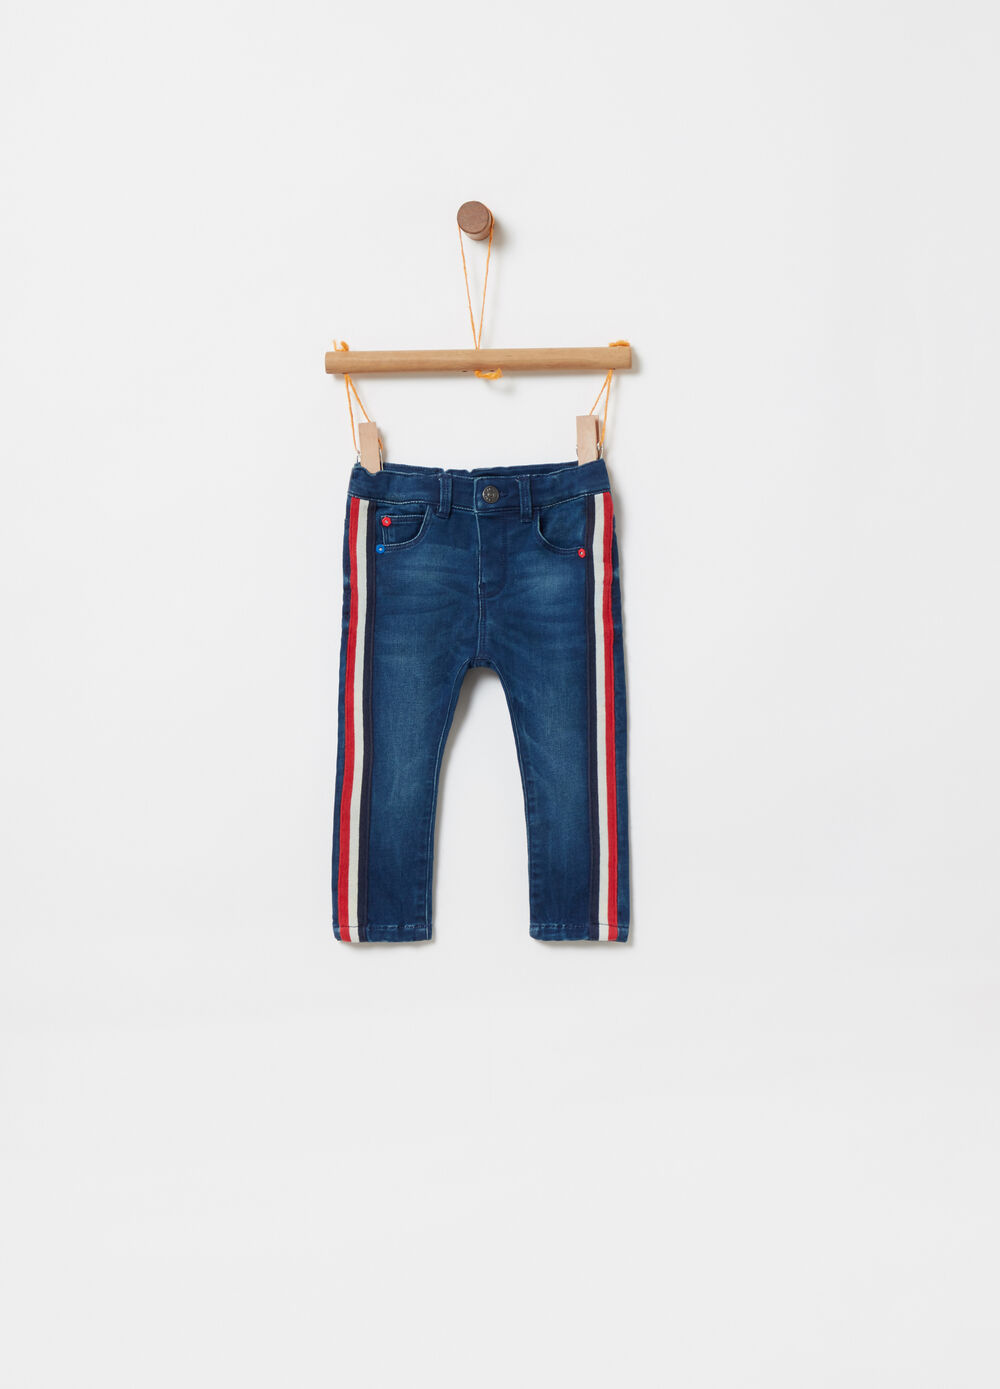 Regular jeans with contrasting bands